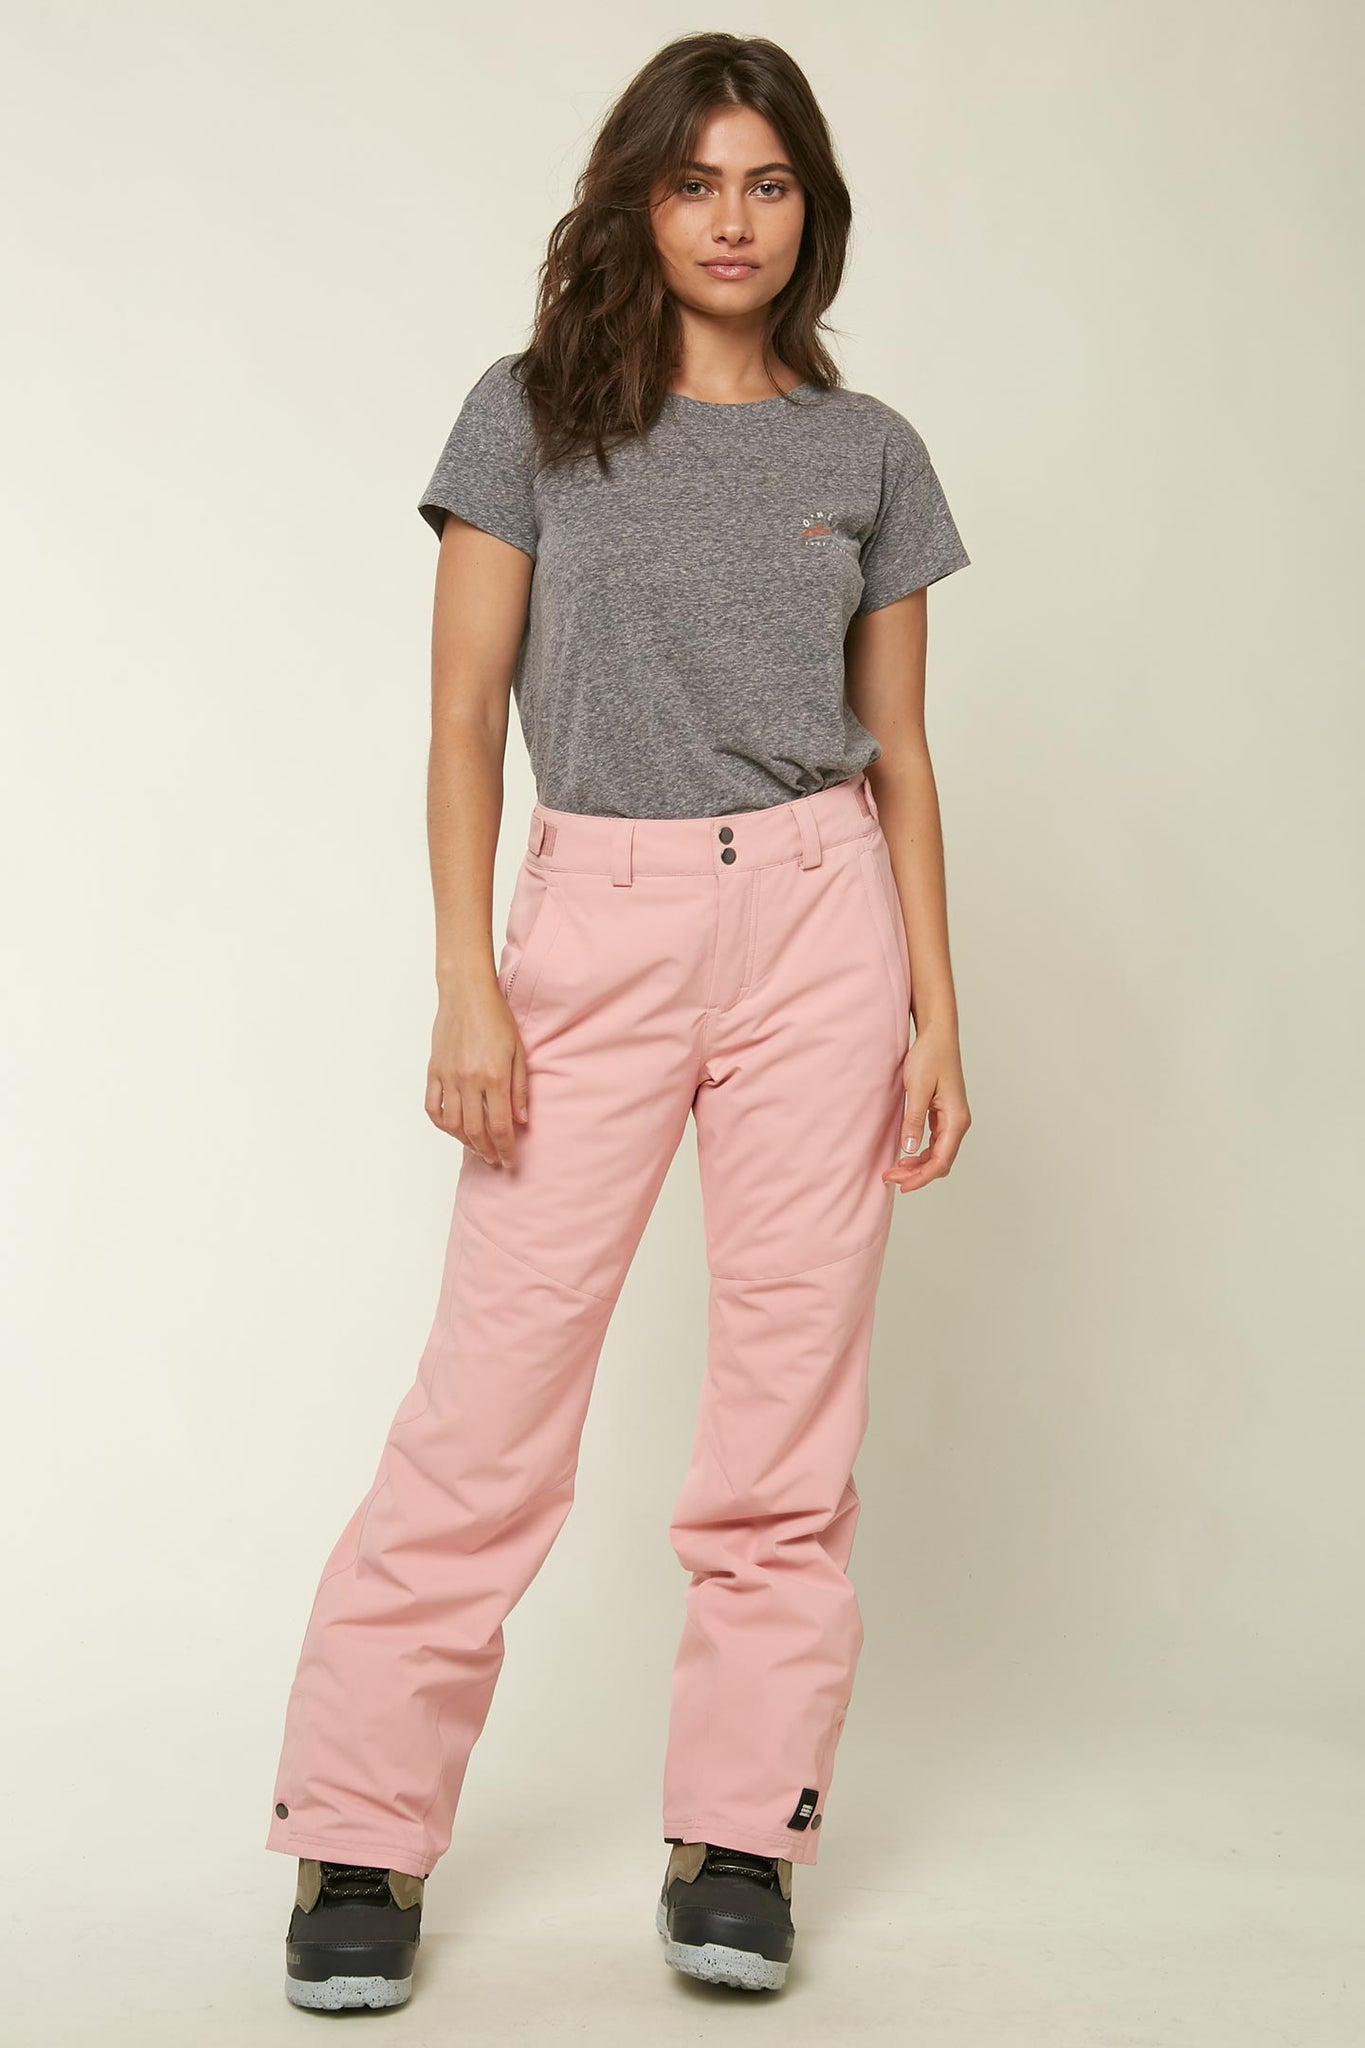 Star Insulated Pants - Bridal Rose | O'Neill